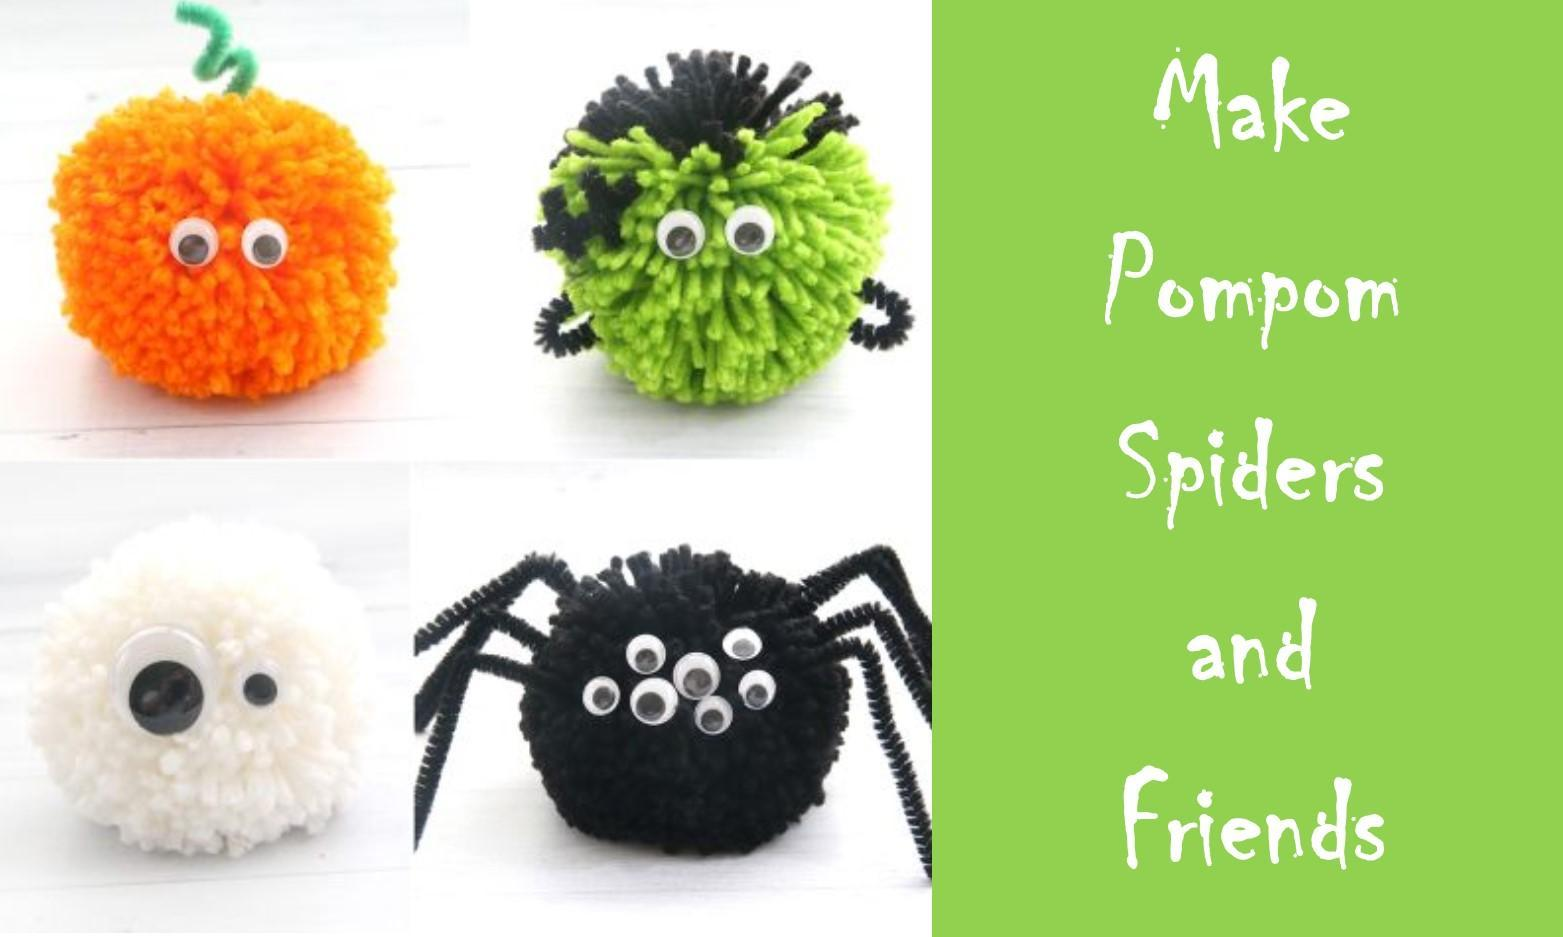 Scrappy Sheep Club - Pompom Spiders and Friends